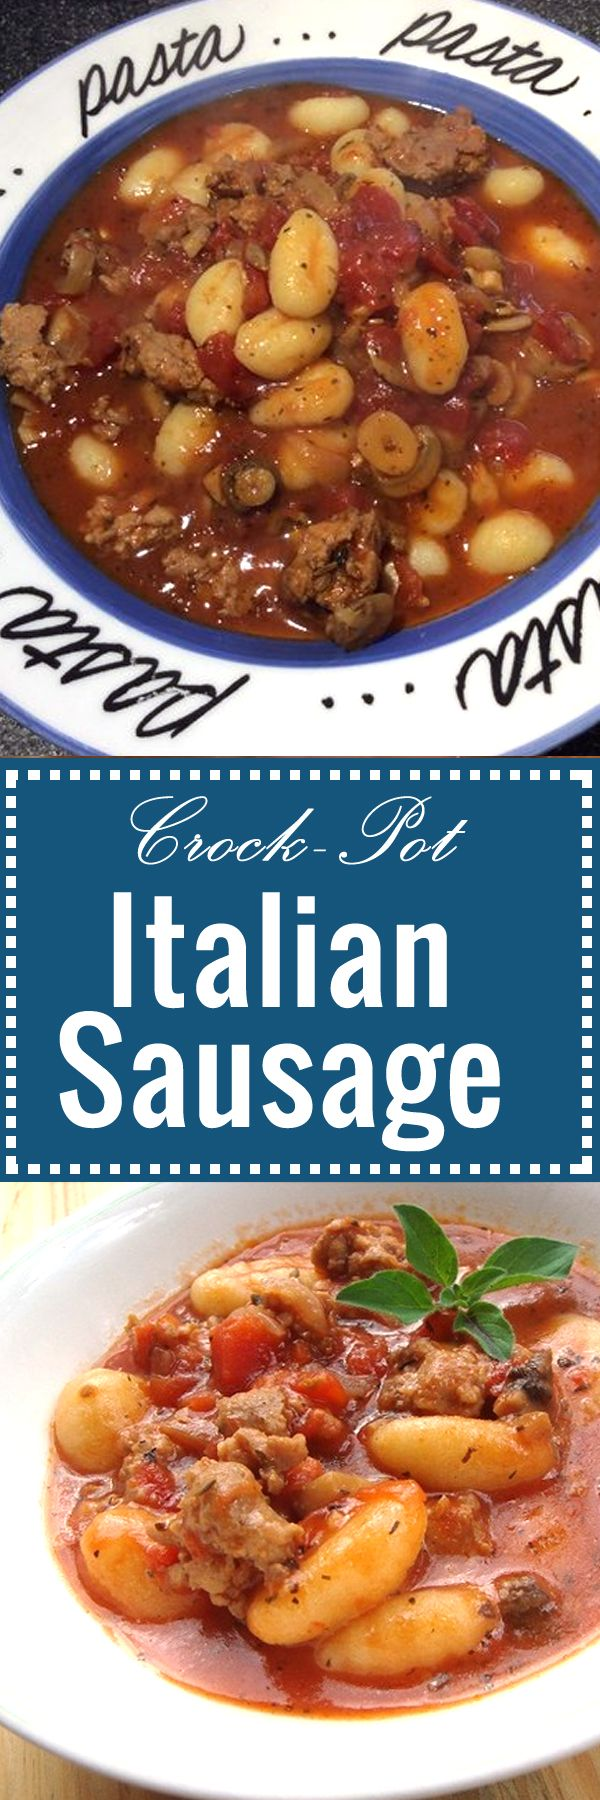 Italian Sausage Casserole - Crock-Pot recipe with ingredients like gnocchi, tomatoes, onions, select spices and of course sausages. So YUMMY! | recipezazz.com